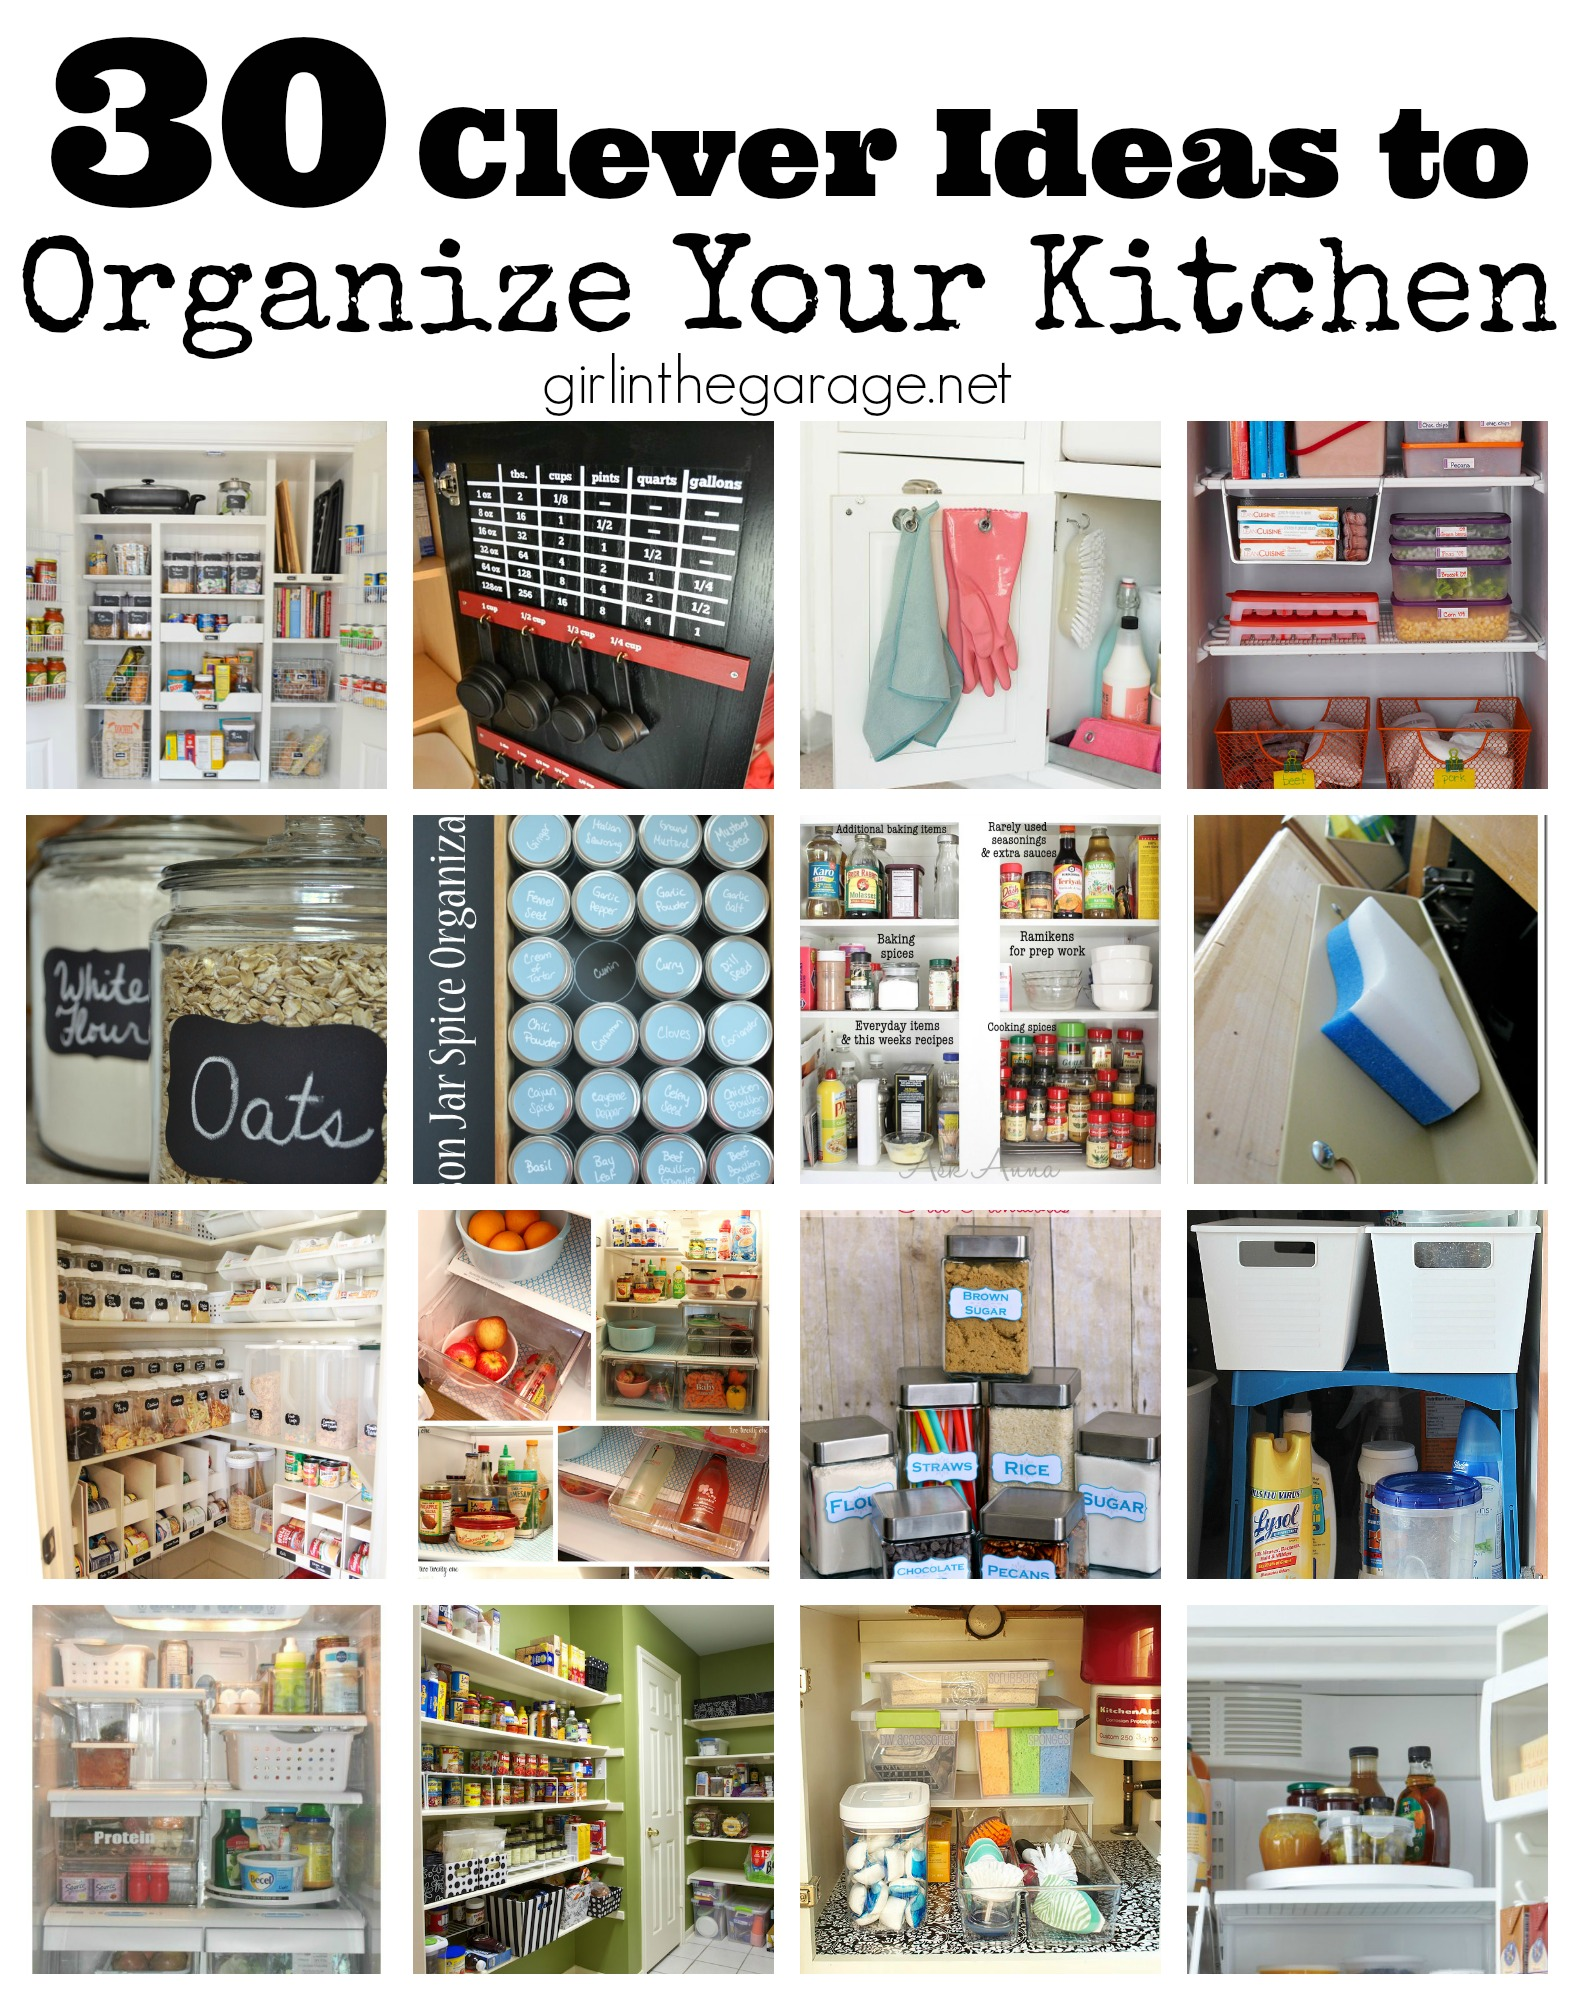 30 clever ideas to organize your kitchen | girl in the garage®